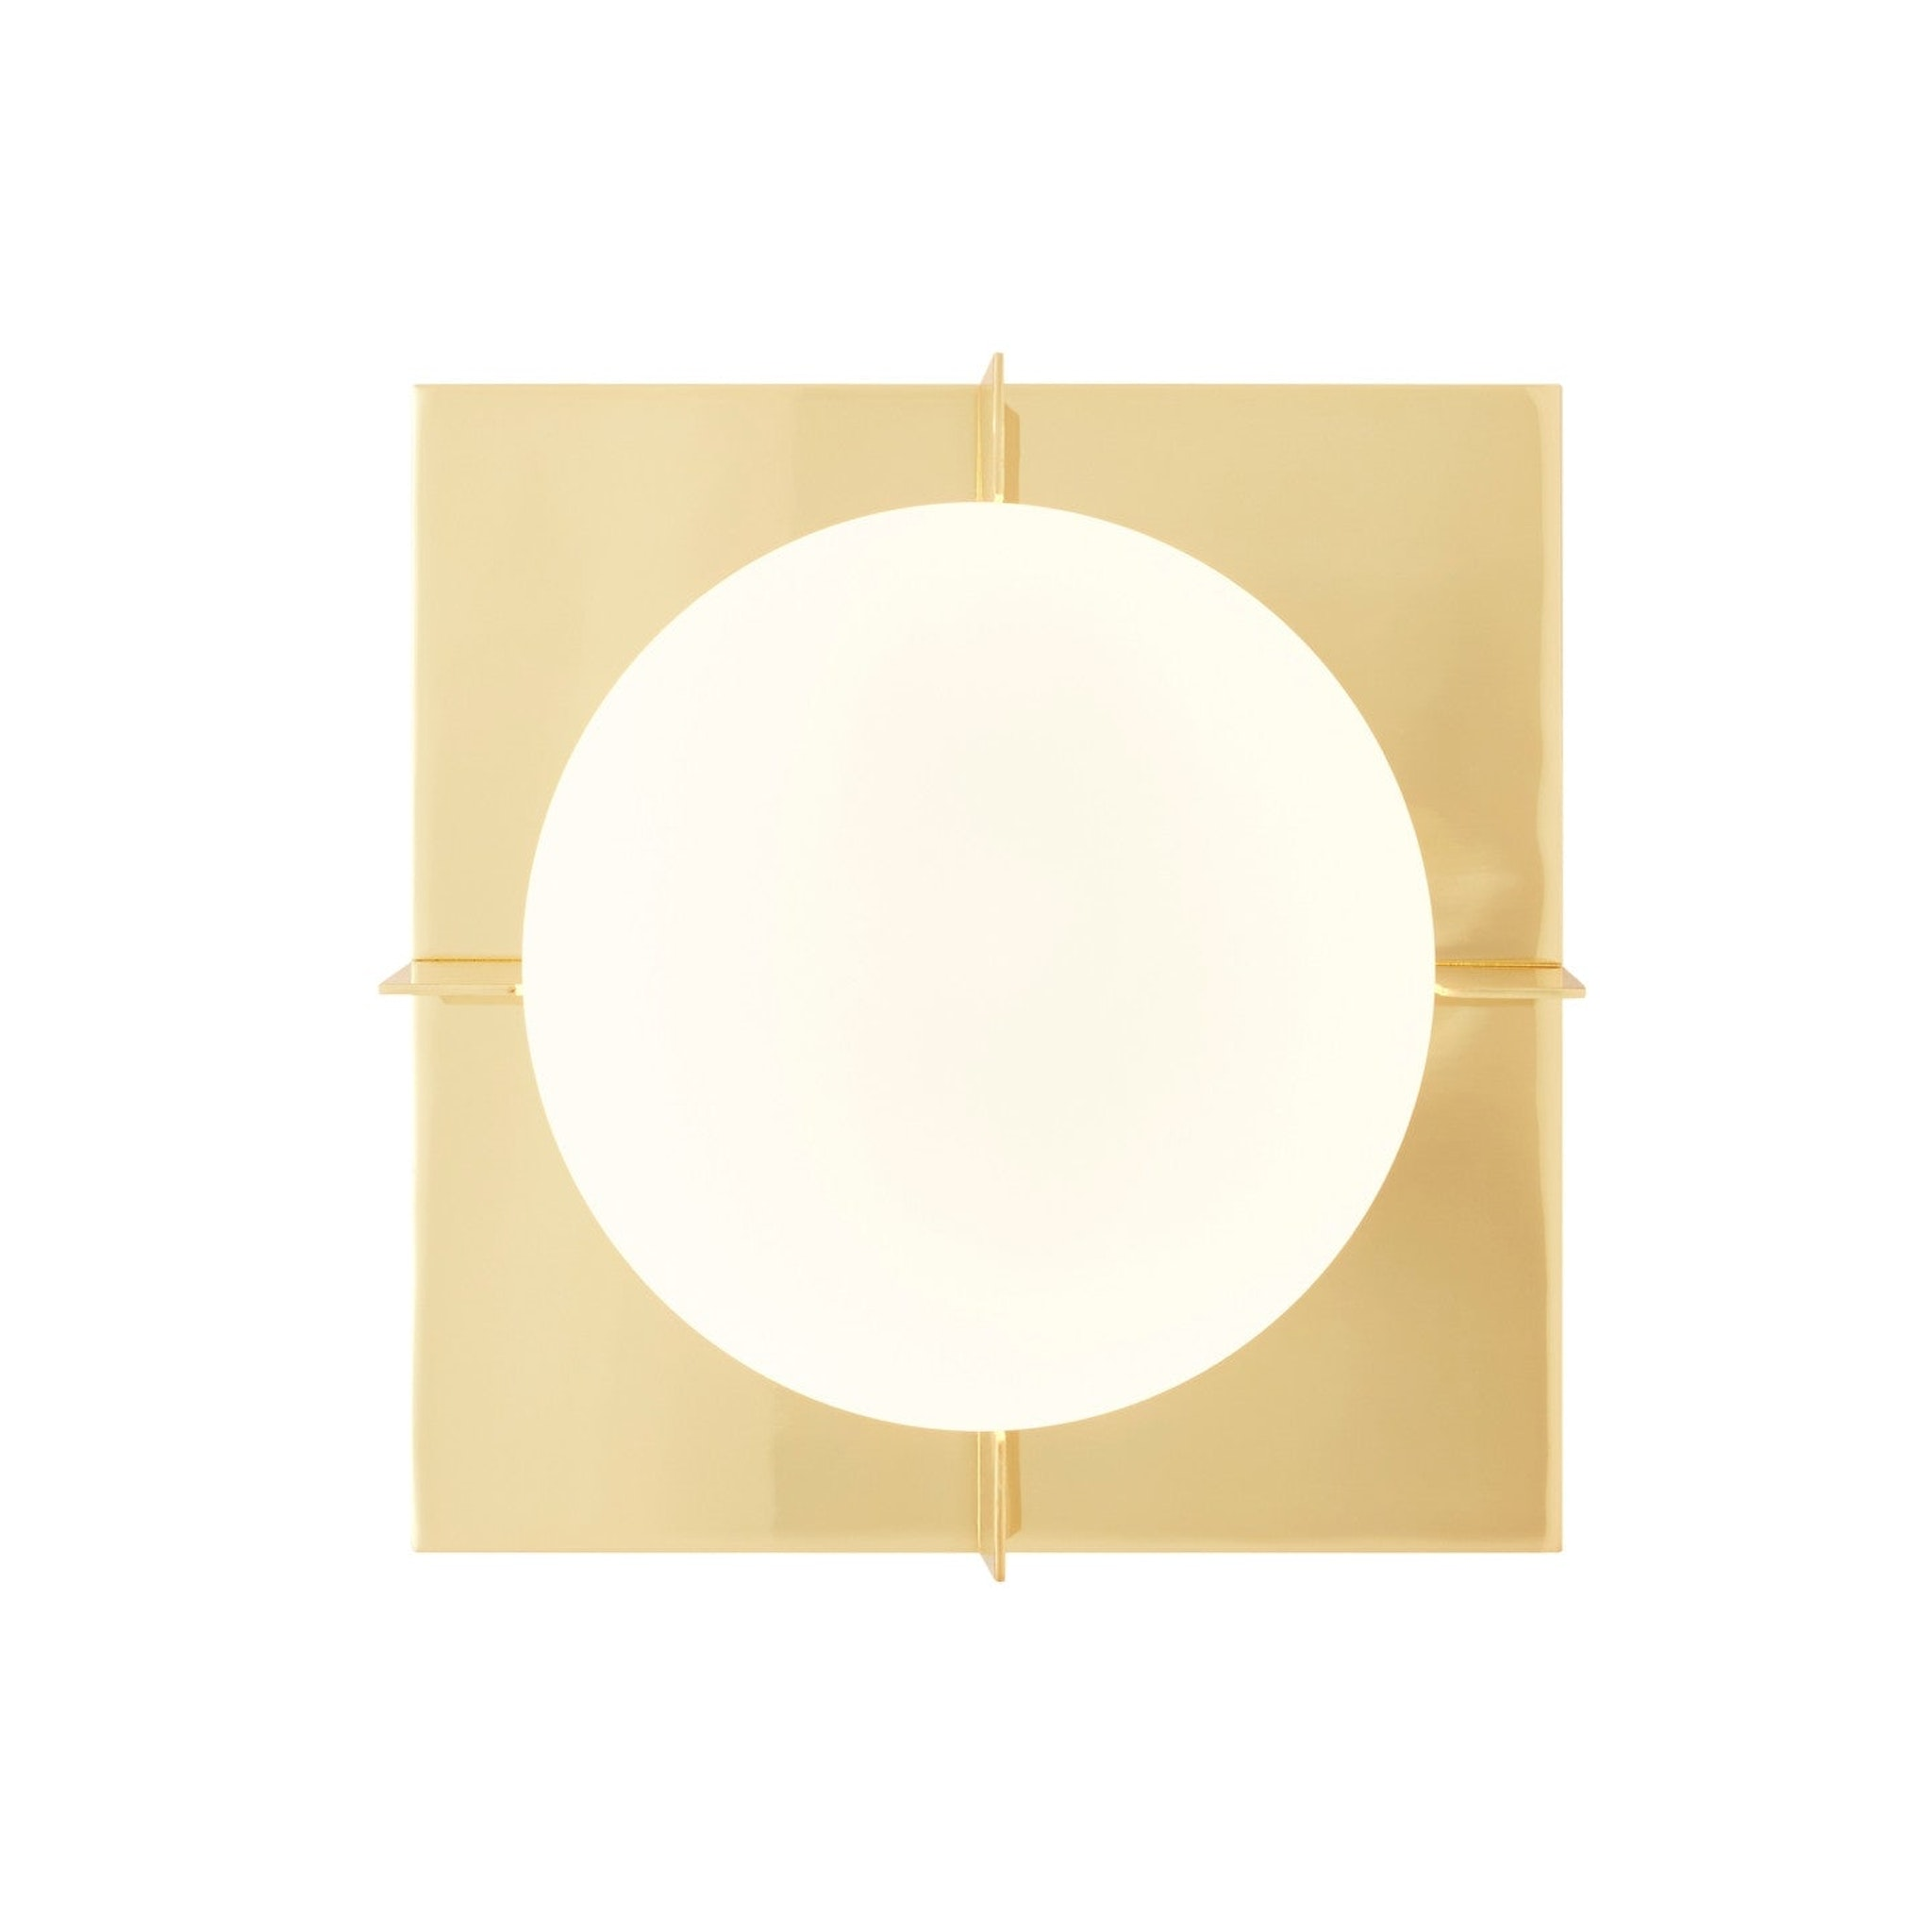 Plane Wall Light by Tom Dixon